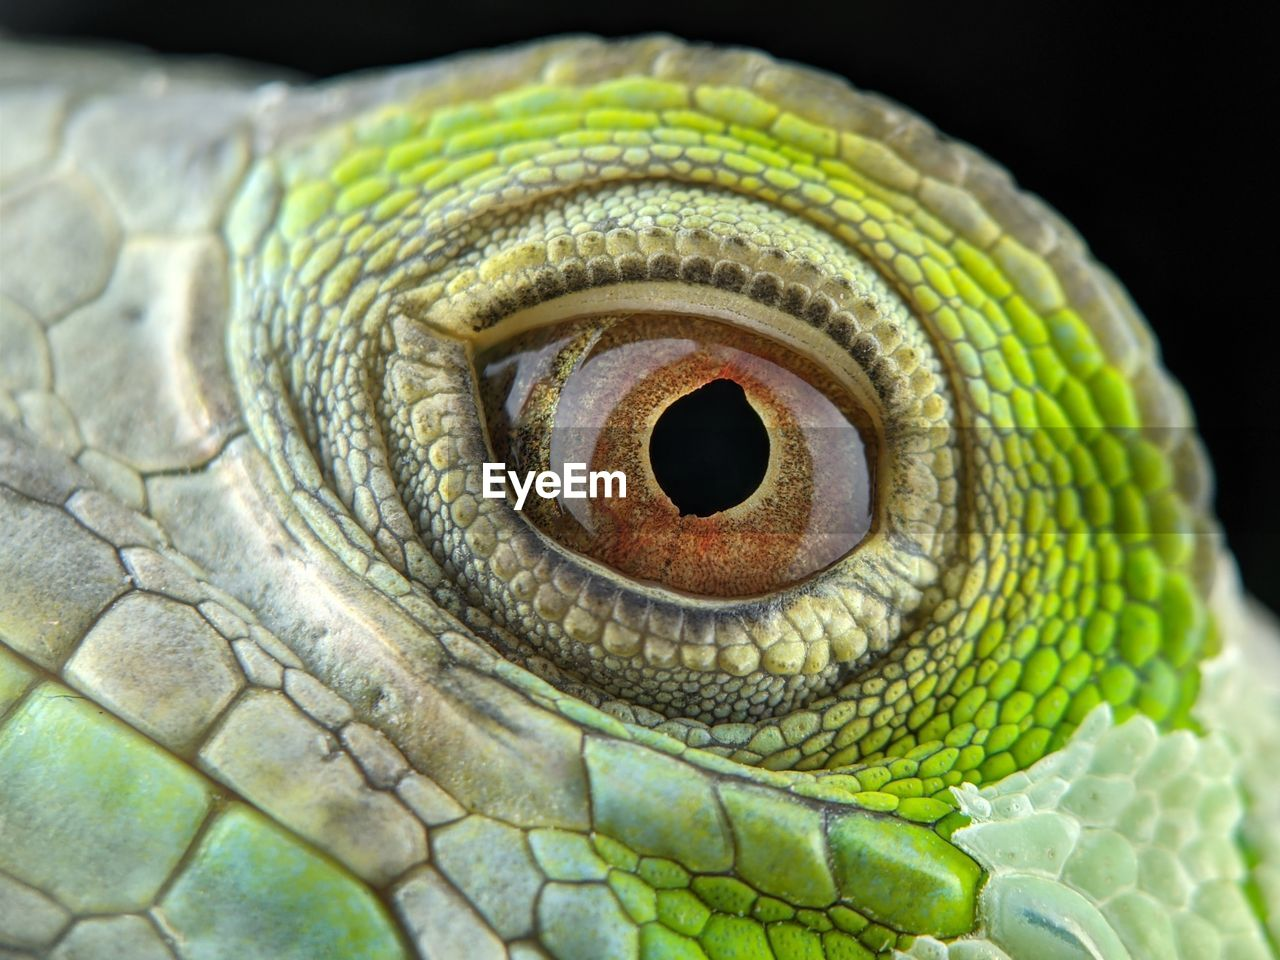 CLOSE-UP OF A REPTILE